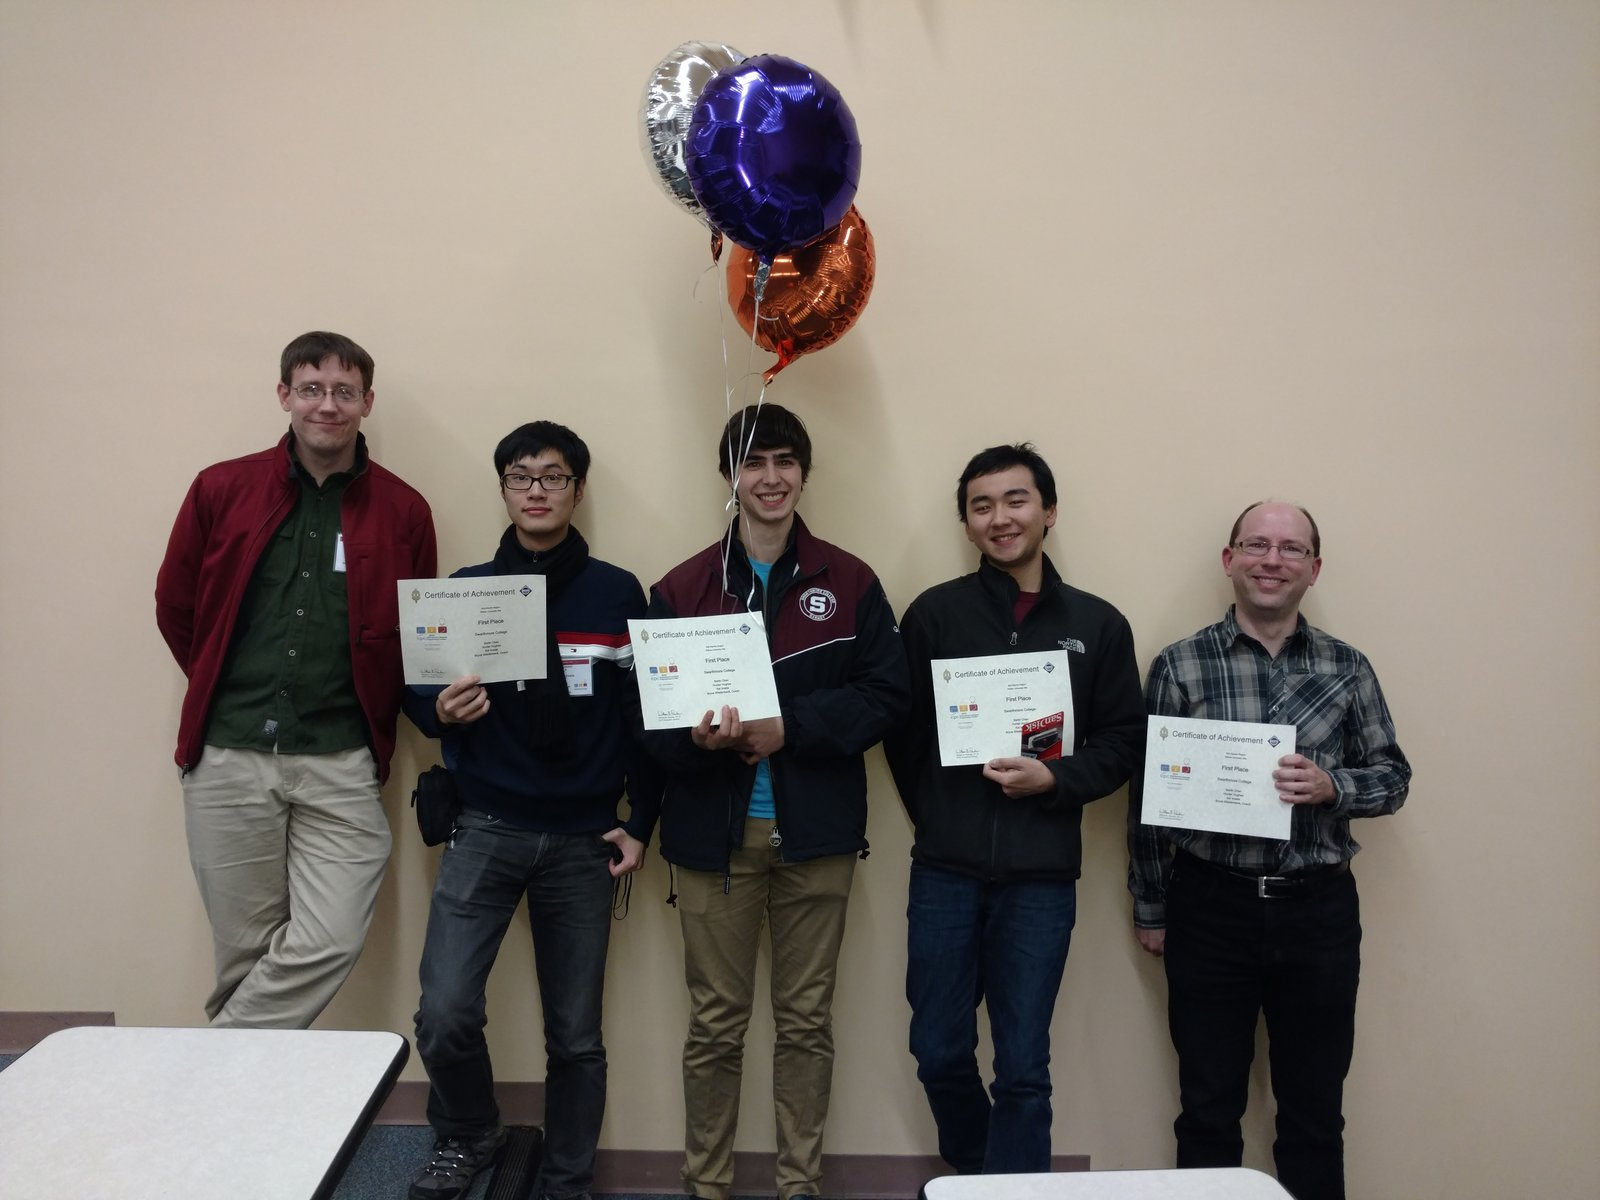 Swarthmore CS students at ICPC